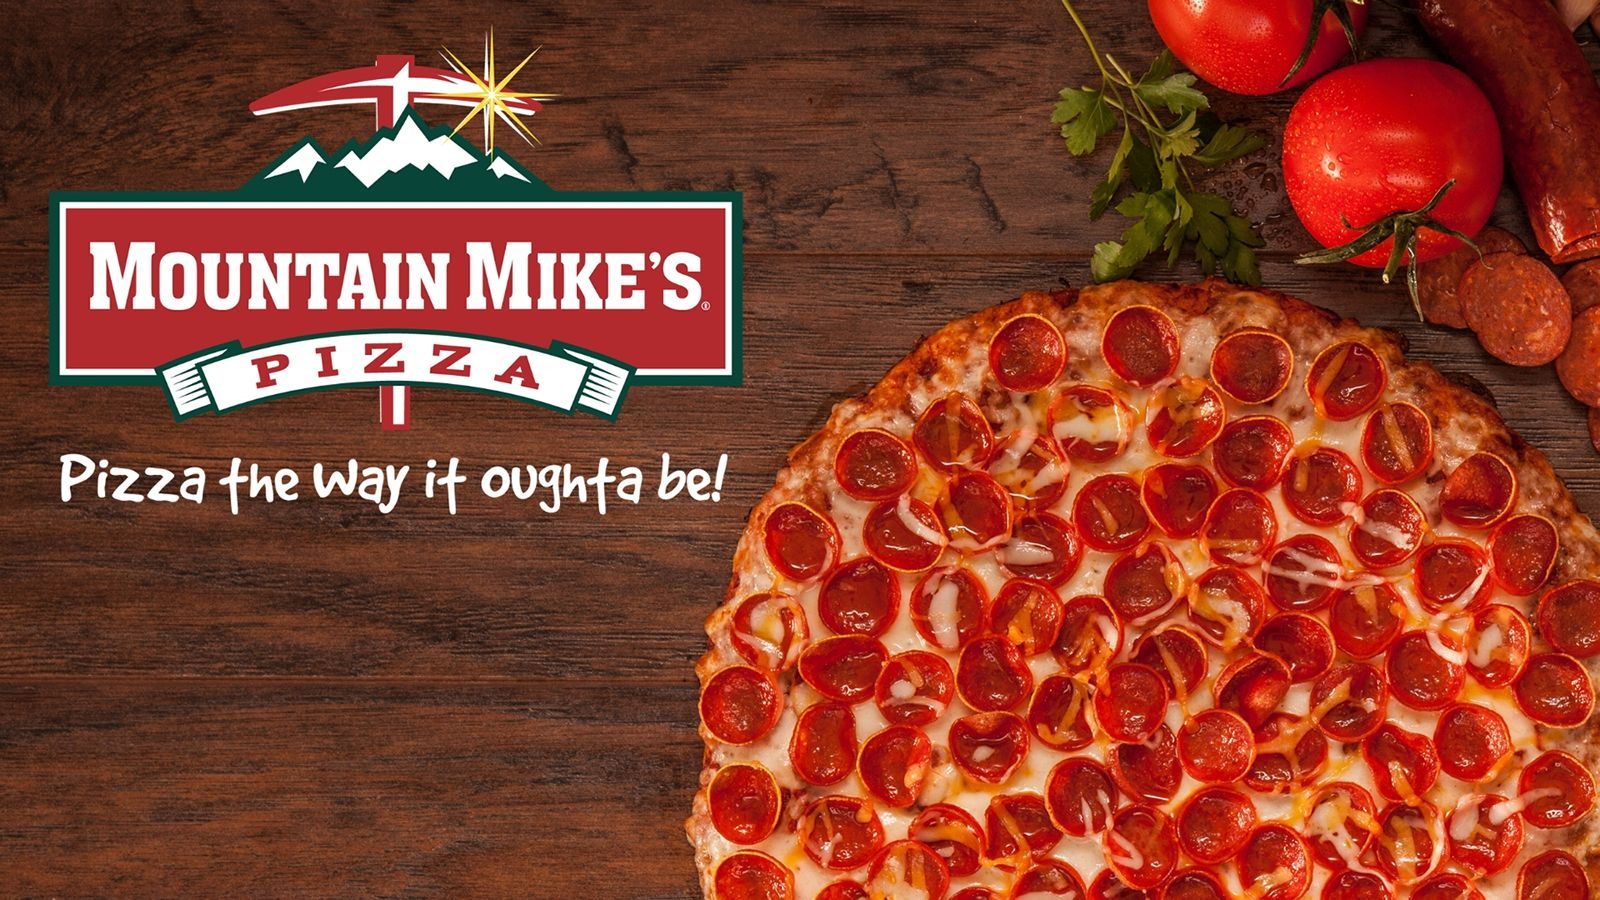 Mountain Mike's Pizza Now Open in Santa Maria